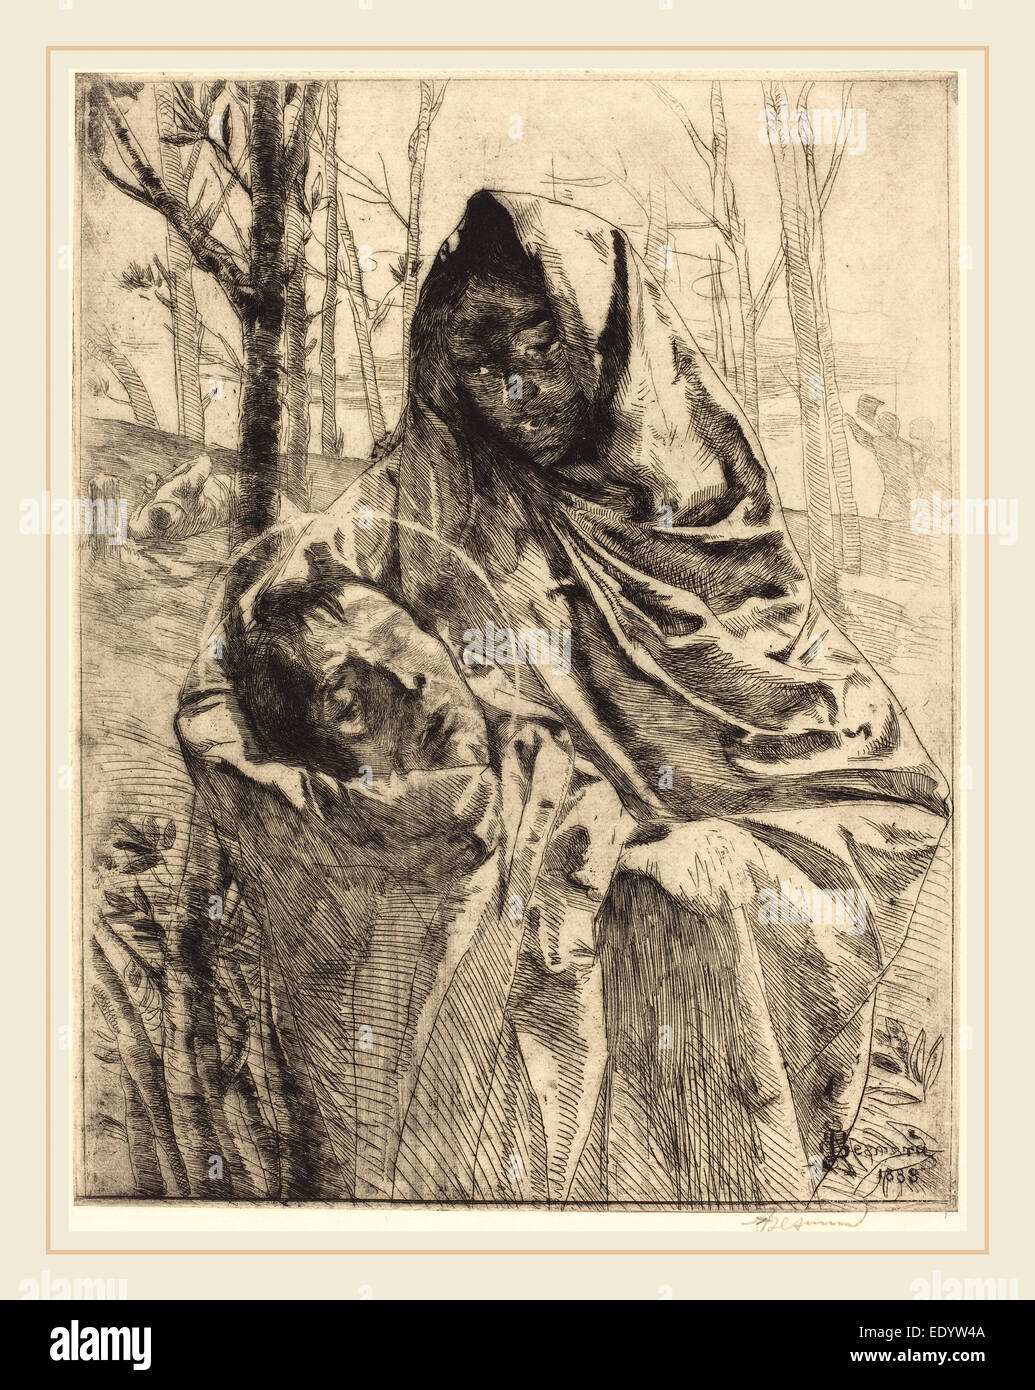 Albert Besnard, French (1849-1934), A Martyr, 1883, etching - Stock Image